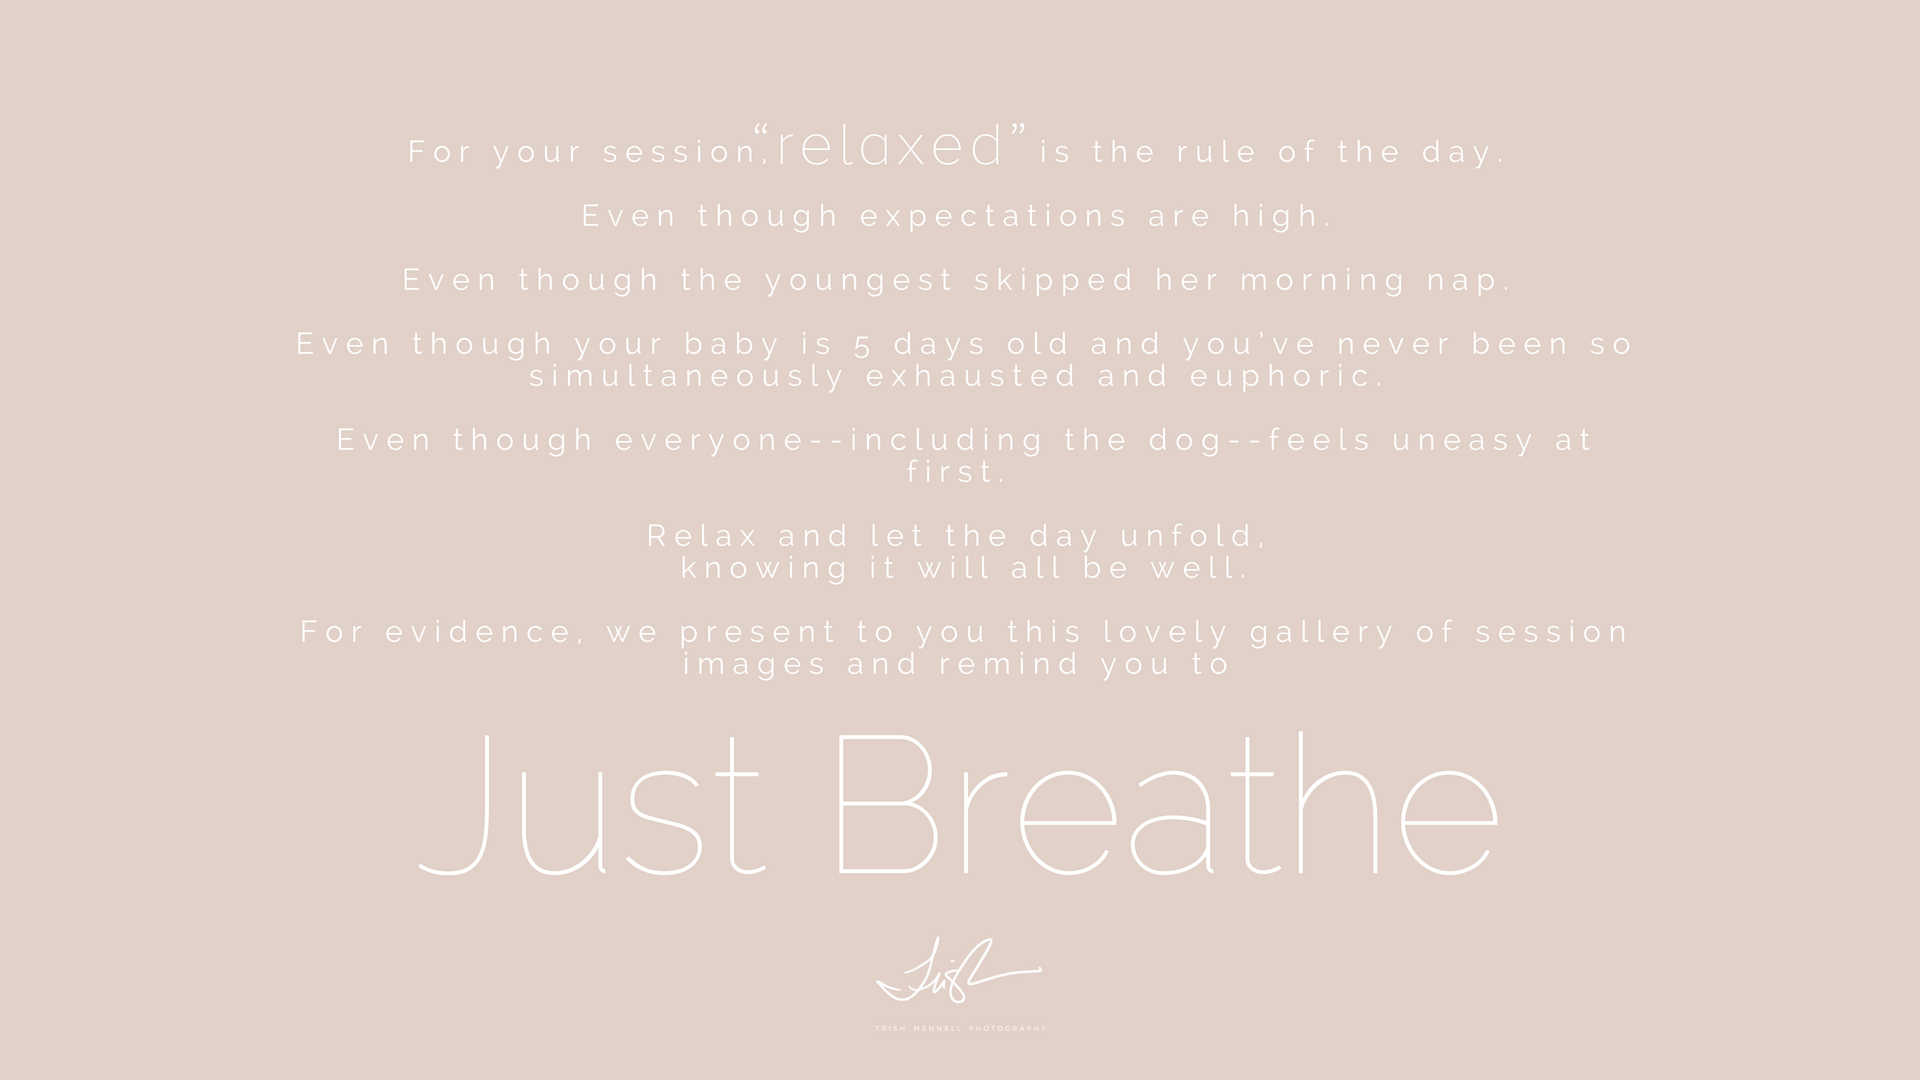 Copy of Just Breathe Family%2FKids.jpg